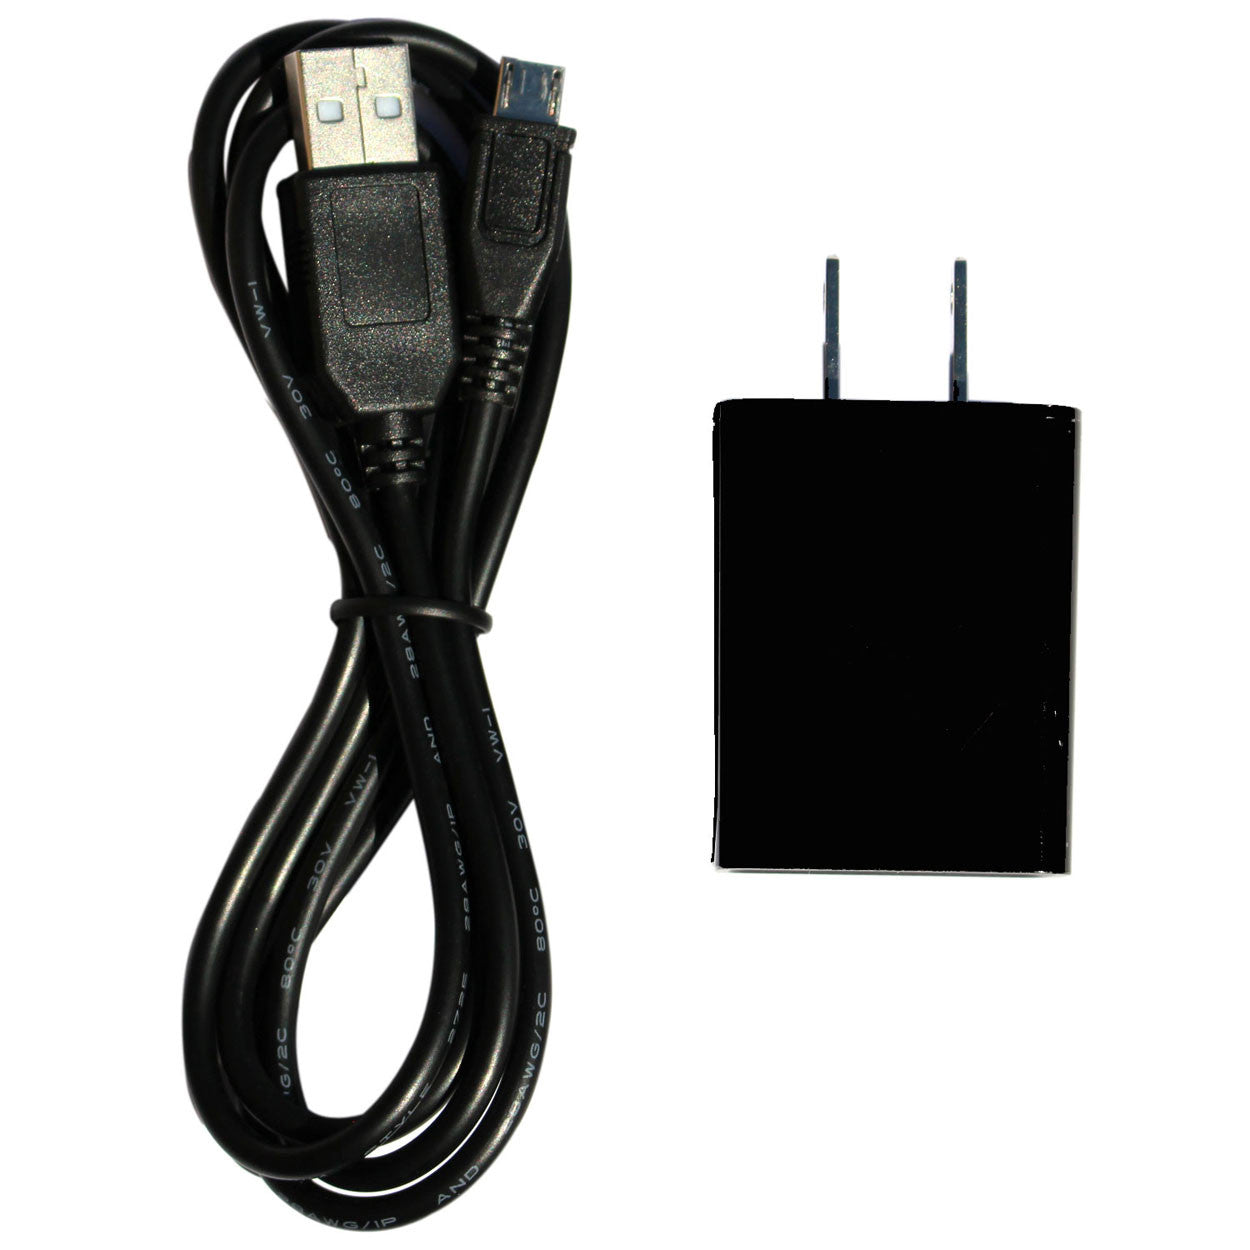 AC Adapter with Micro USB for Windows Tablet (TM800W610L, TM800P610L, TM818, TM101W535L, TM101W545L, TM800W560L)